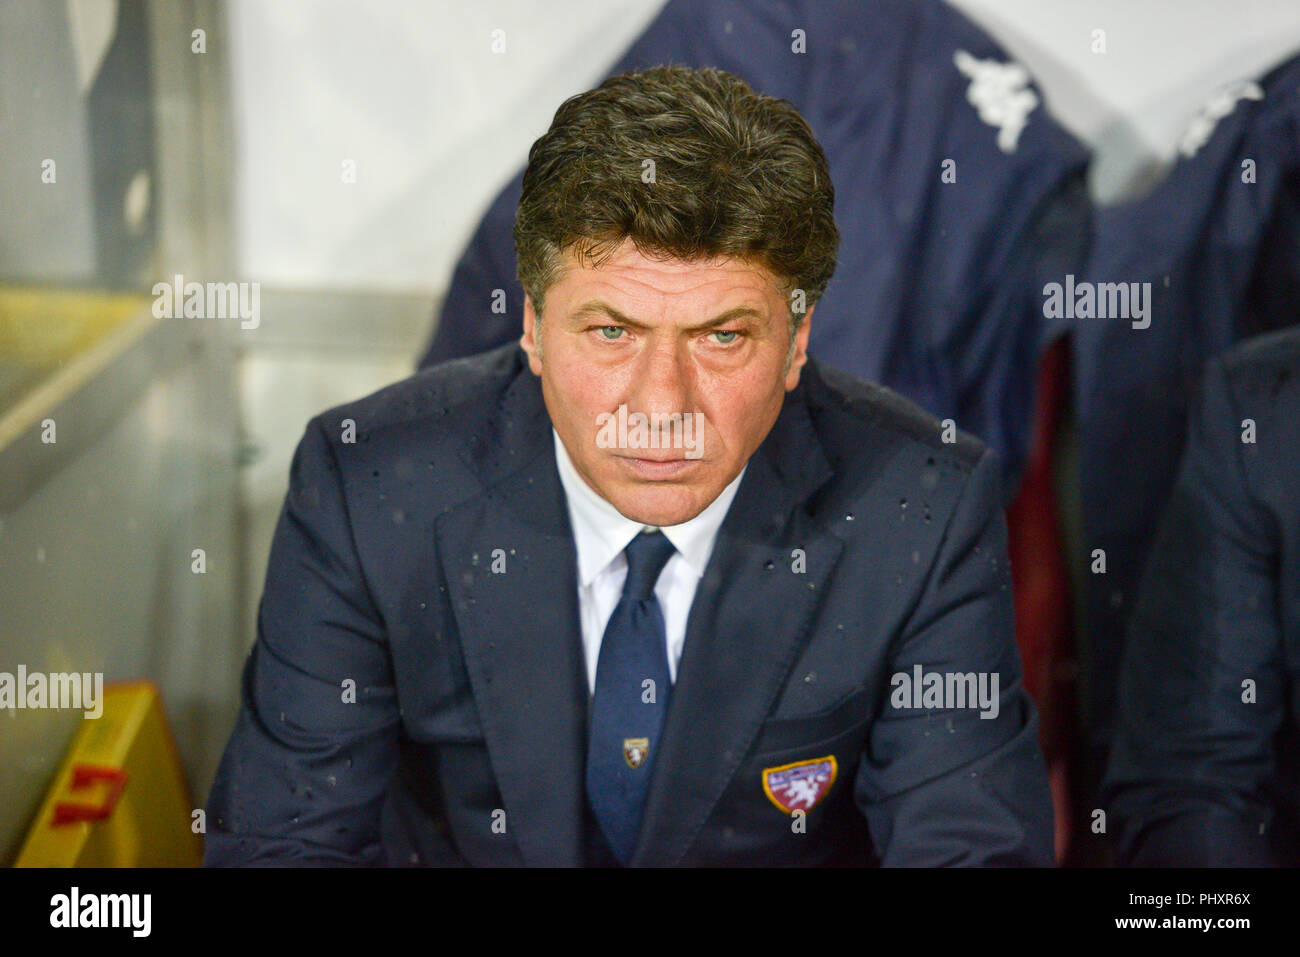 Turin, Italy. 2nd Sept 2018. Walter Mazzarri, head coach of Torino FC,during the Serie A football match between Torino FC and S.P.A.L at Olympic Grande Torino Stadium on September 02, 2018 in Turin, Italy. Credit: Antonio Polia/Alamy Live News Stock Photo